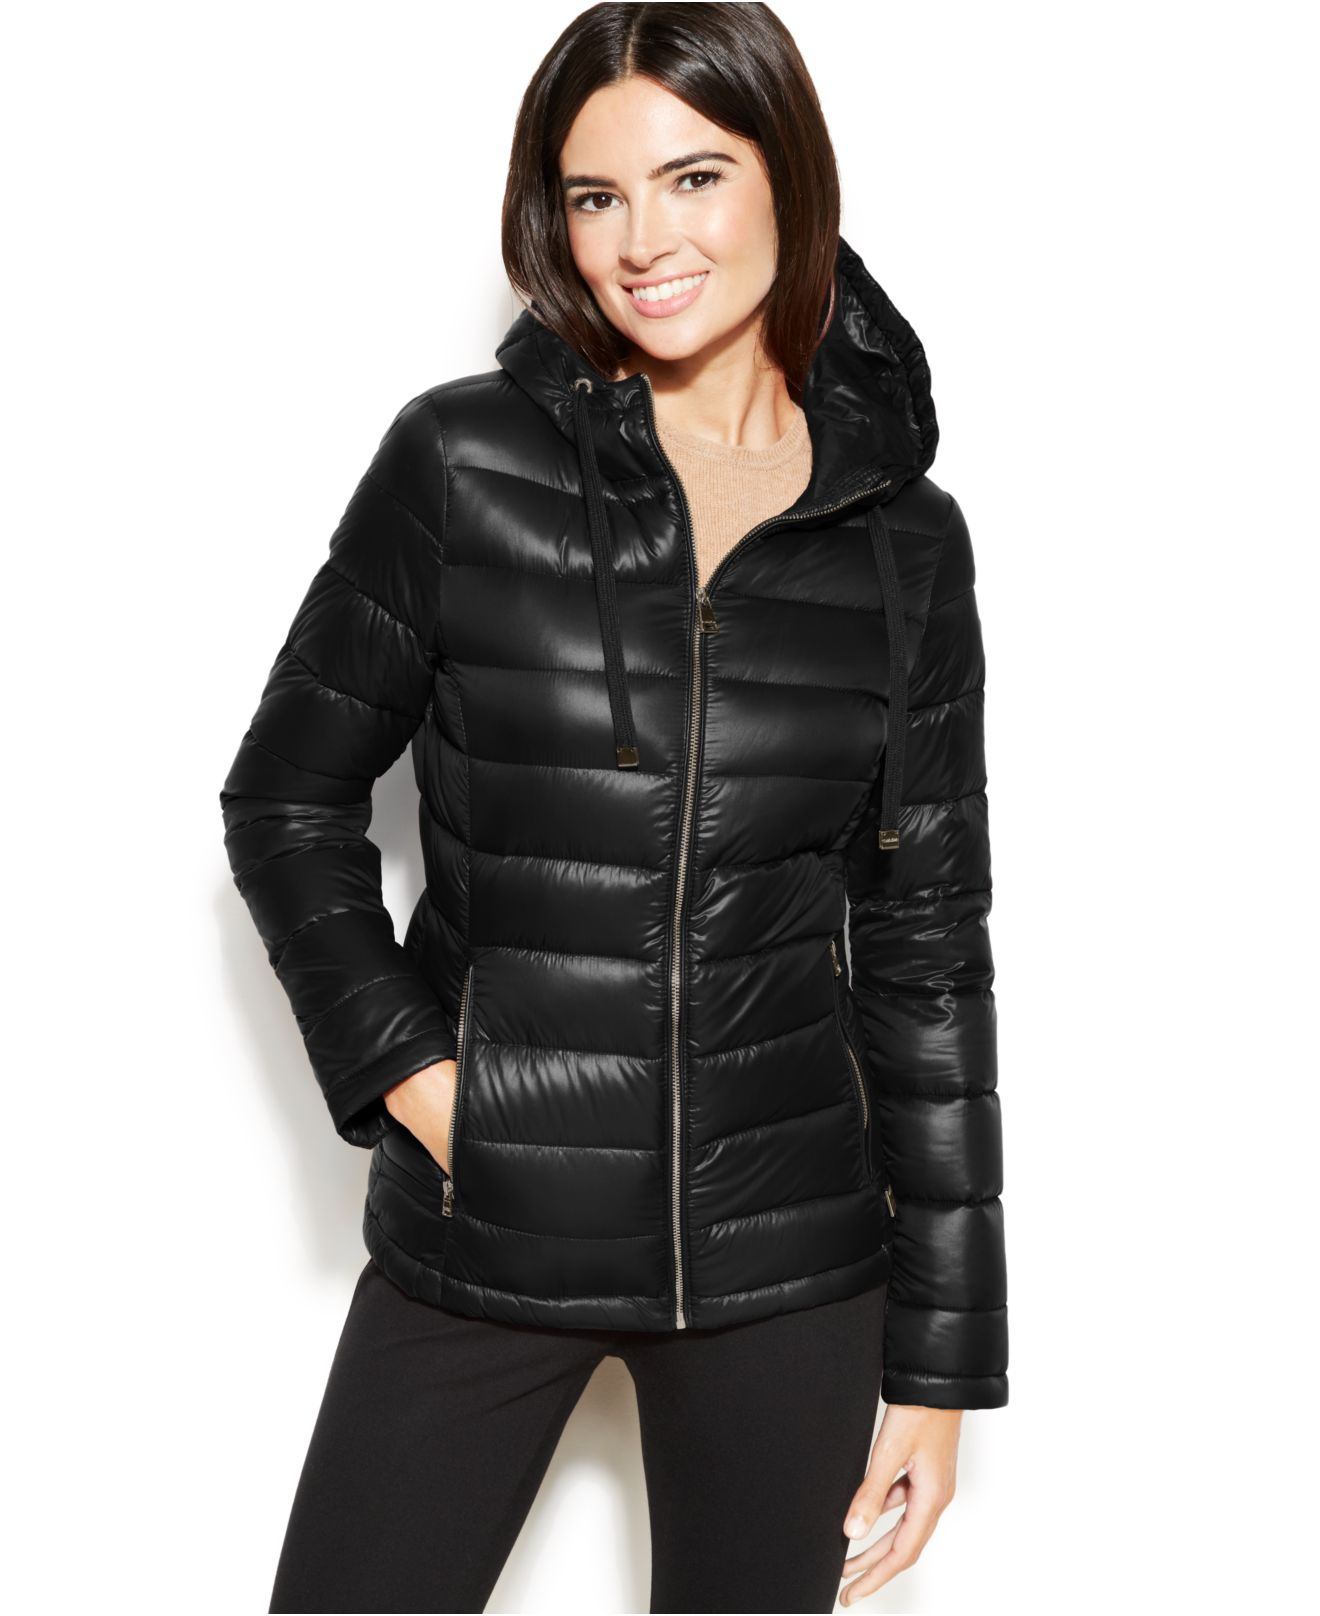 bc9c0d8ec3dc Calvin Klein Hooded Quilted Down Puffer Coat - Best Quilt Grafimage.co